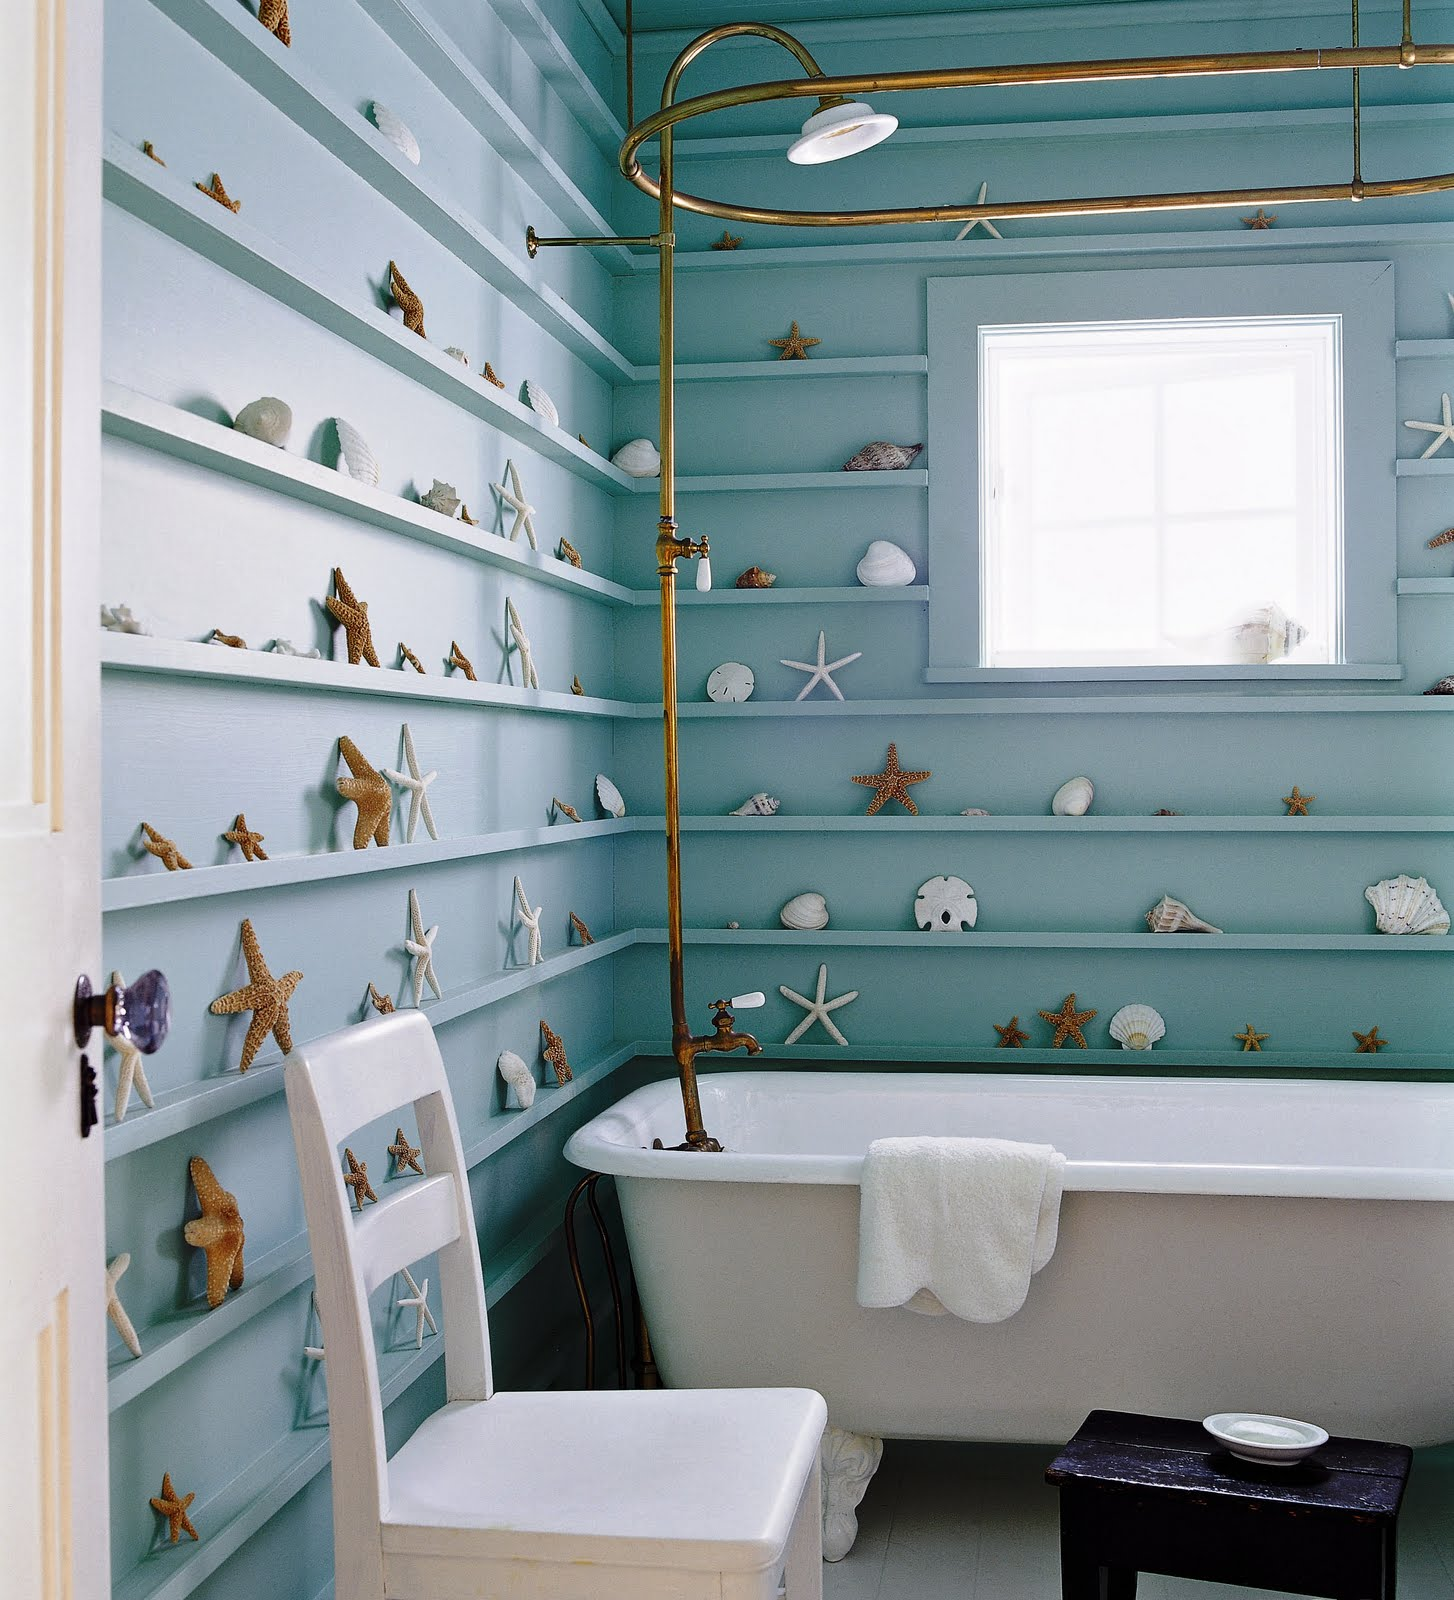 Ez decorating know how bathroom designs the nautical for Beach decor bathroom ideas